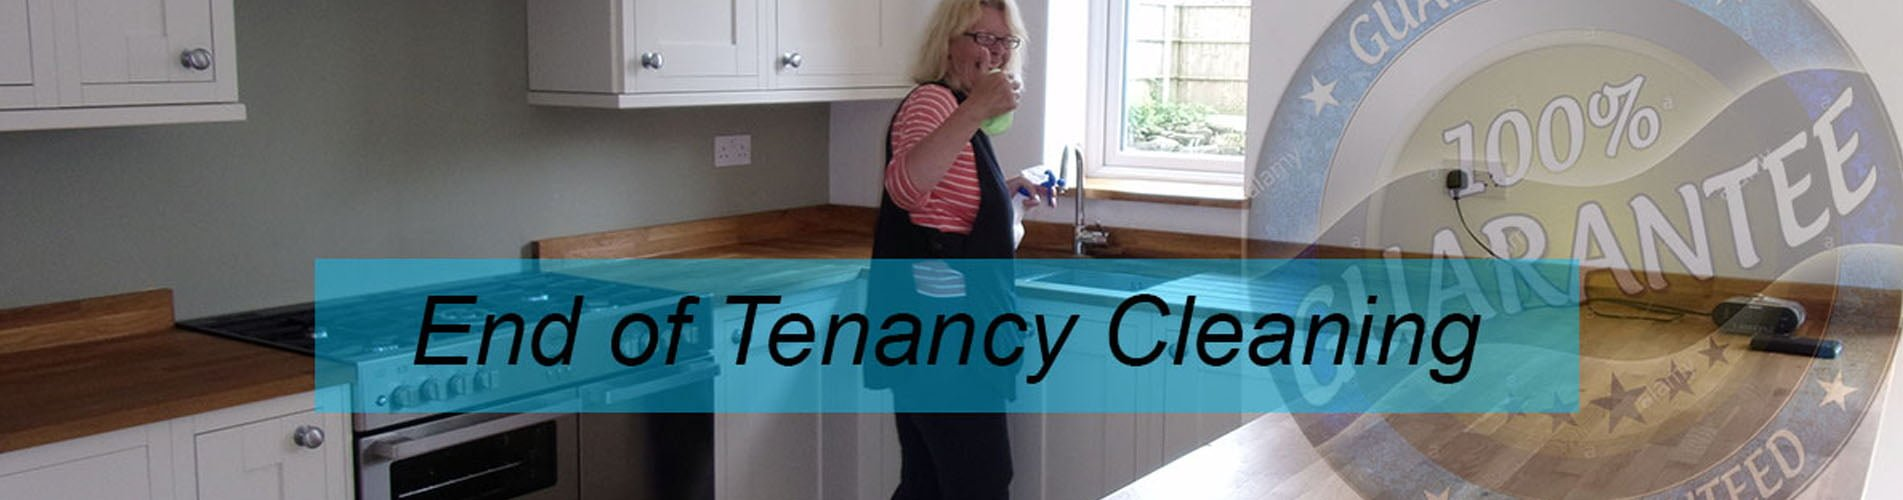 End of Tenancy cleaners near me